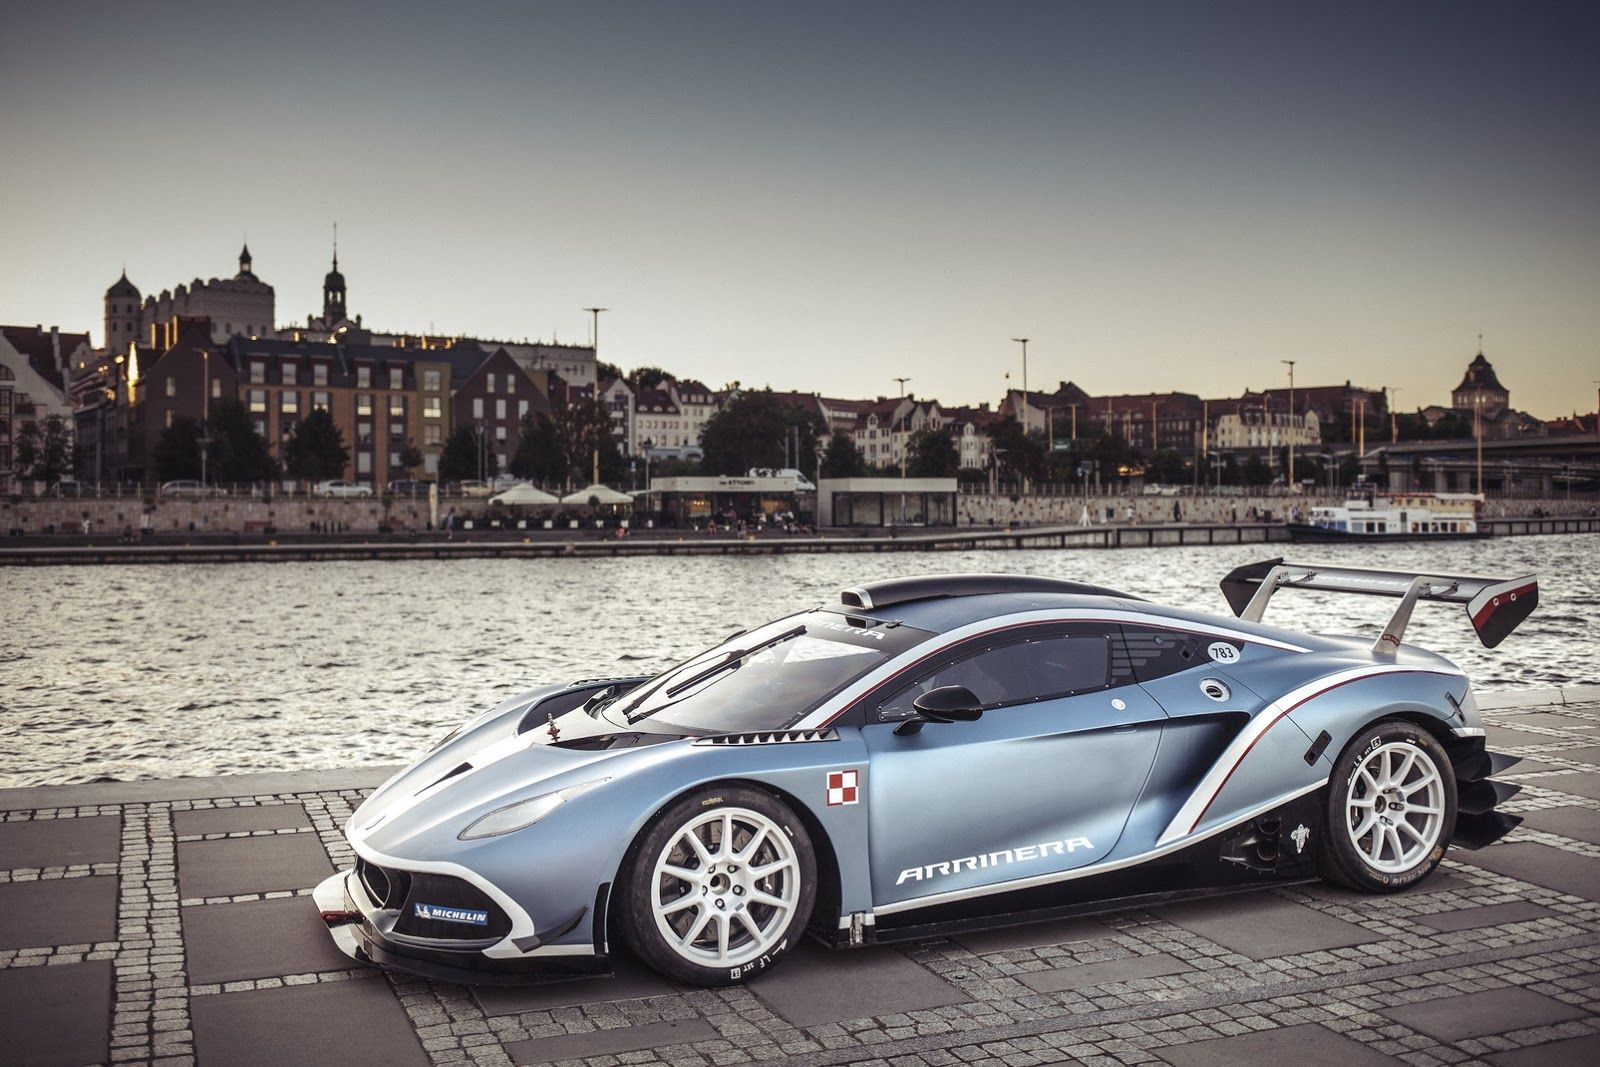 Arrinera Hussarya The Polish British Supercar While Most Of The Supercars Come From Countries Like Great Britain Germany And Italy There Are Countries